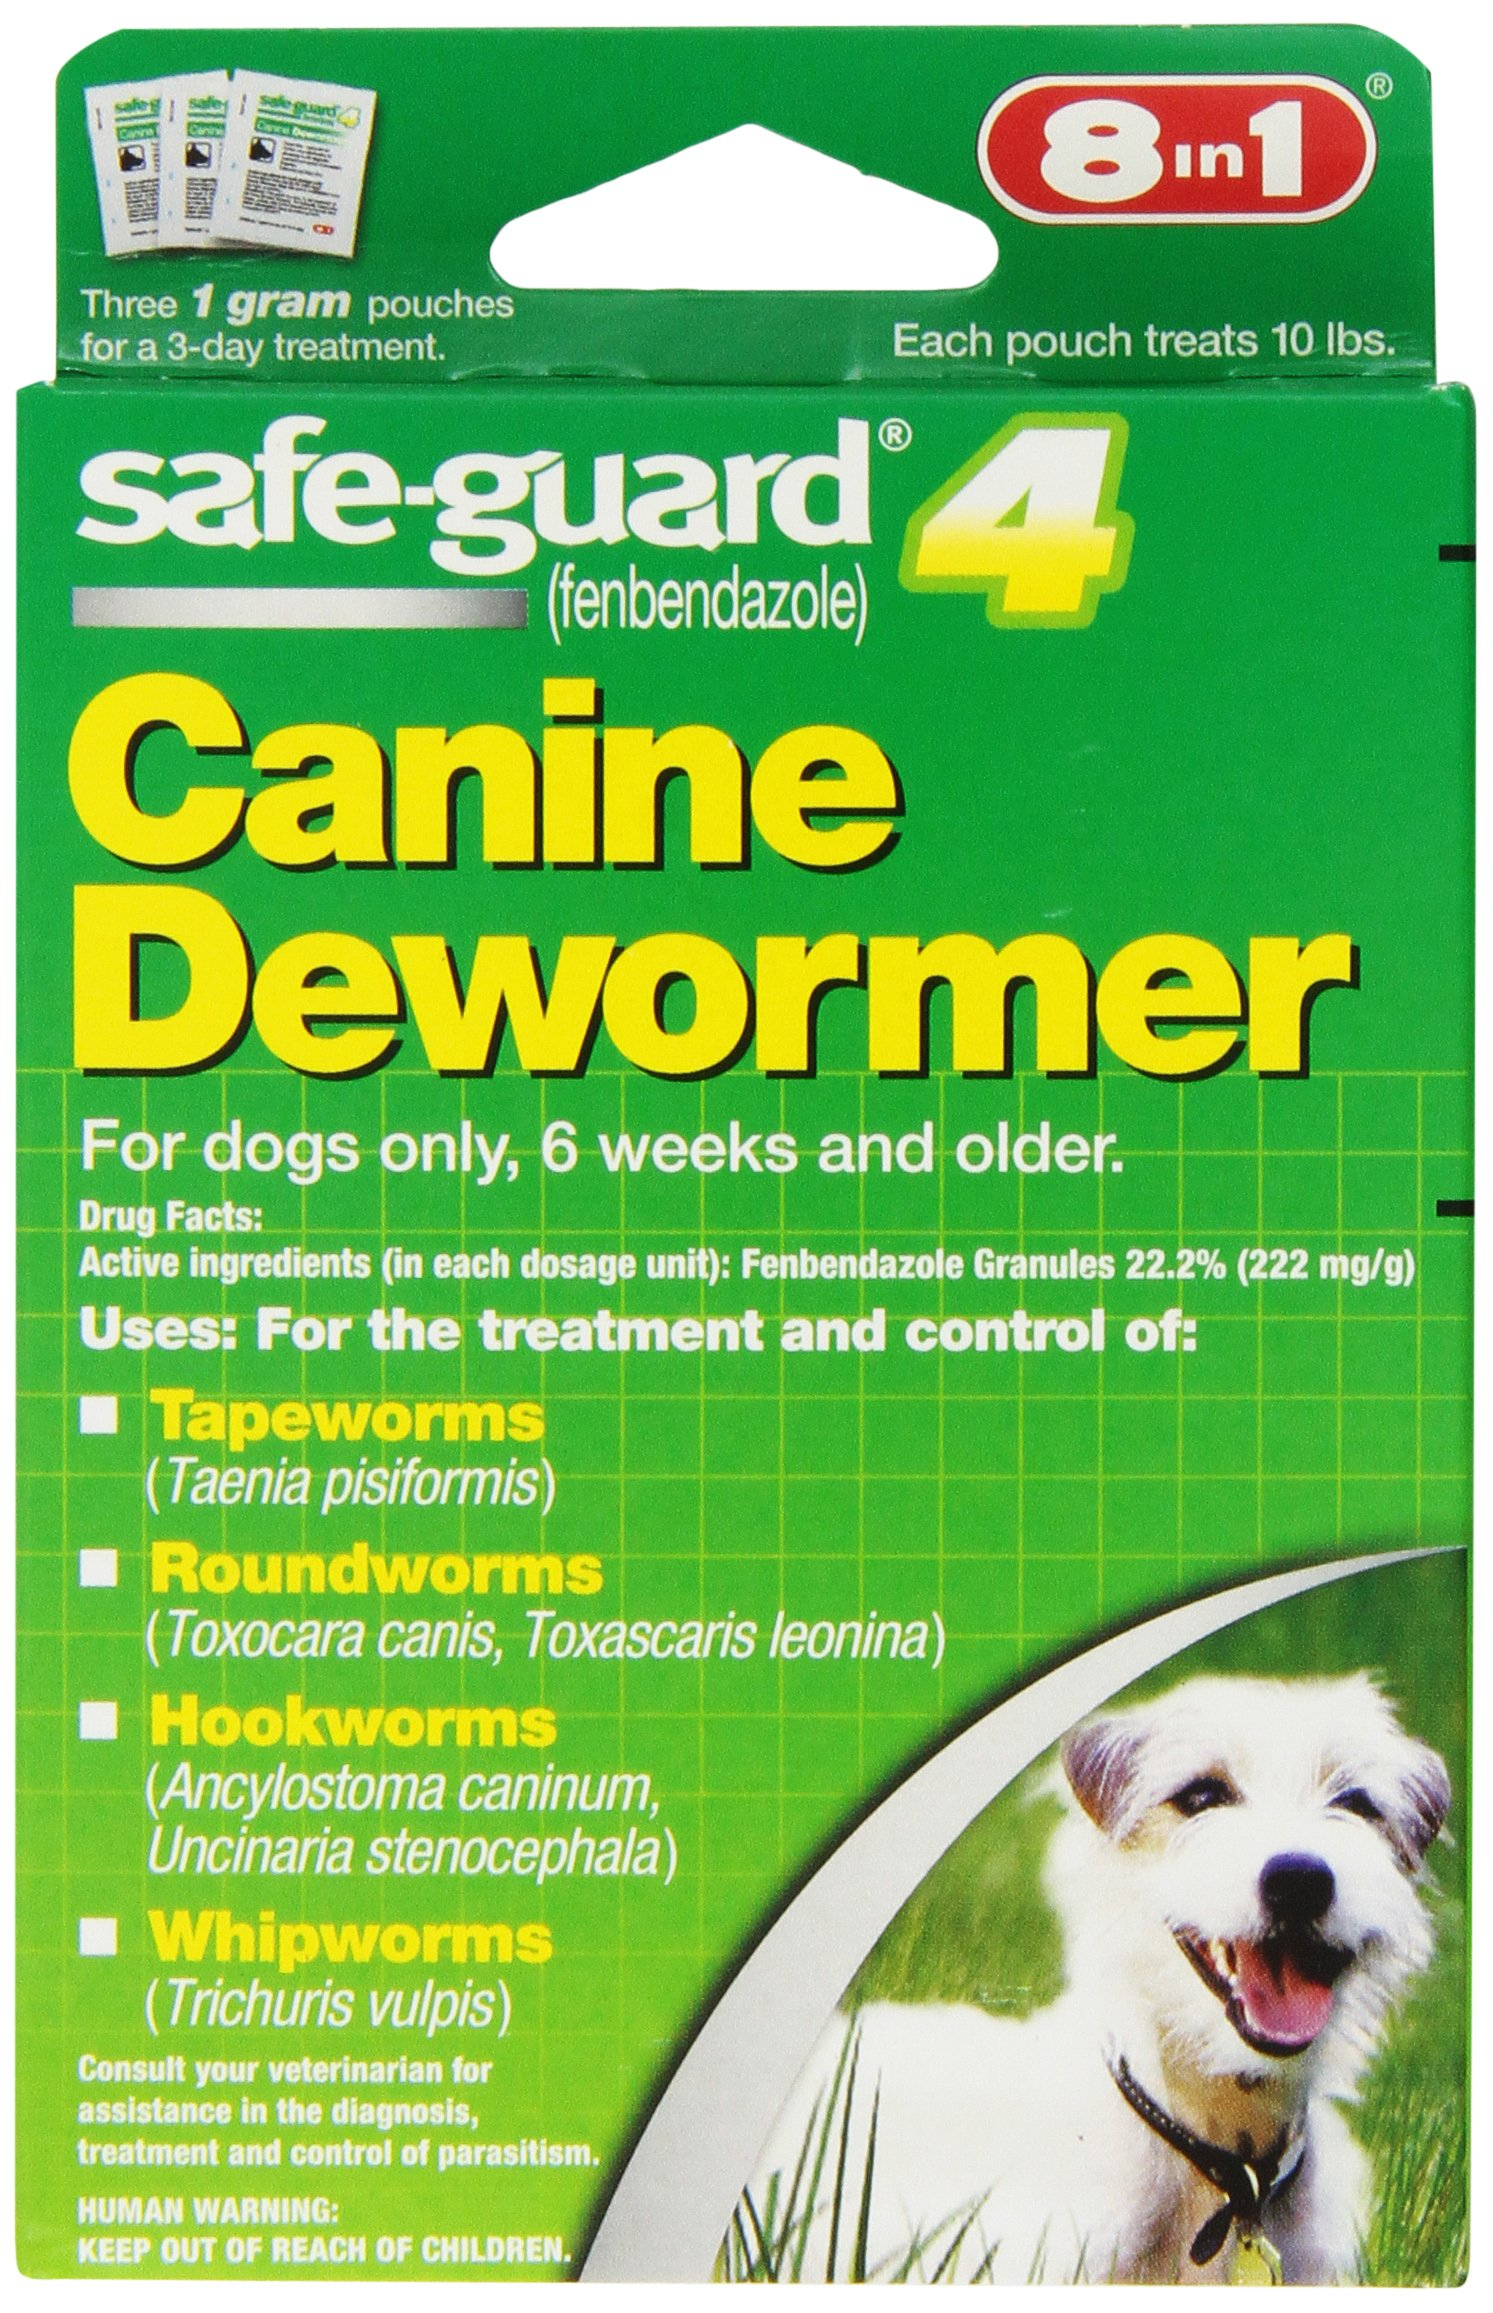 8in1 Safe Guard Canine Dewormer Small